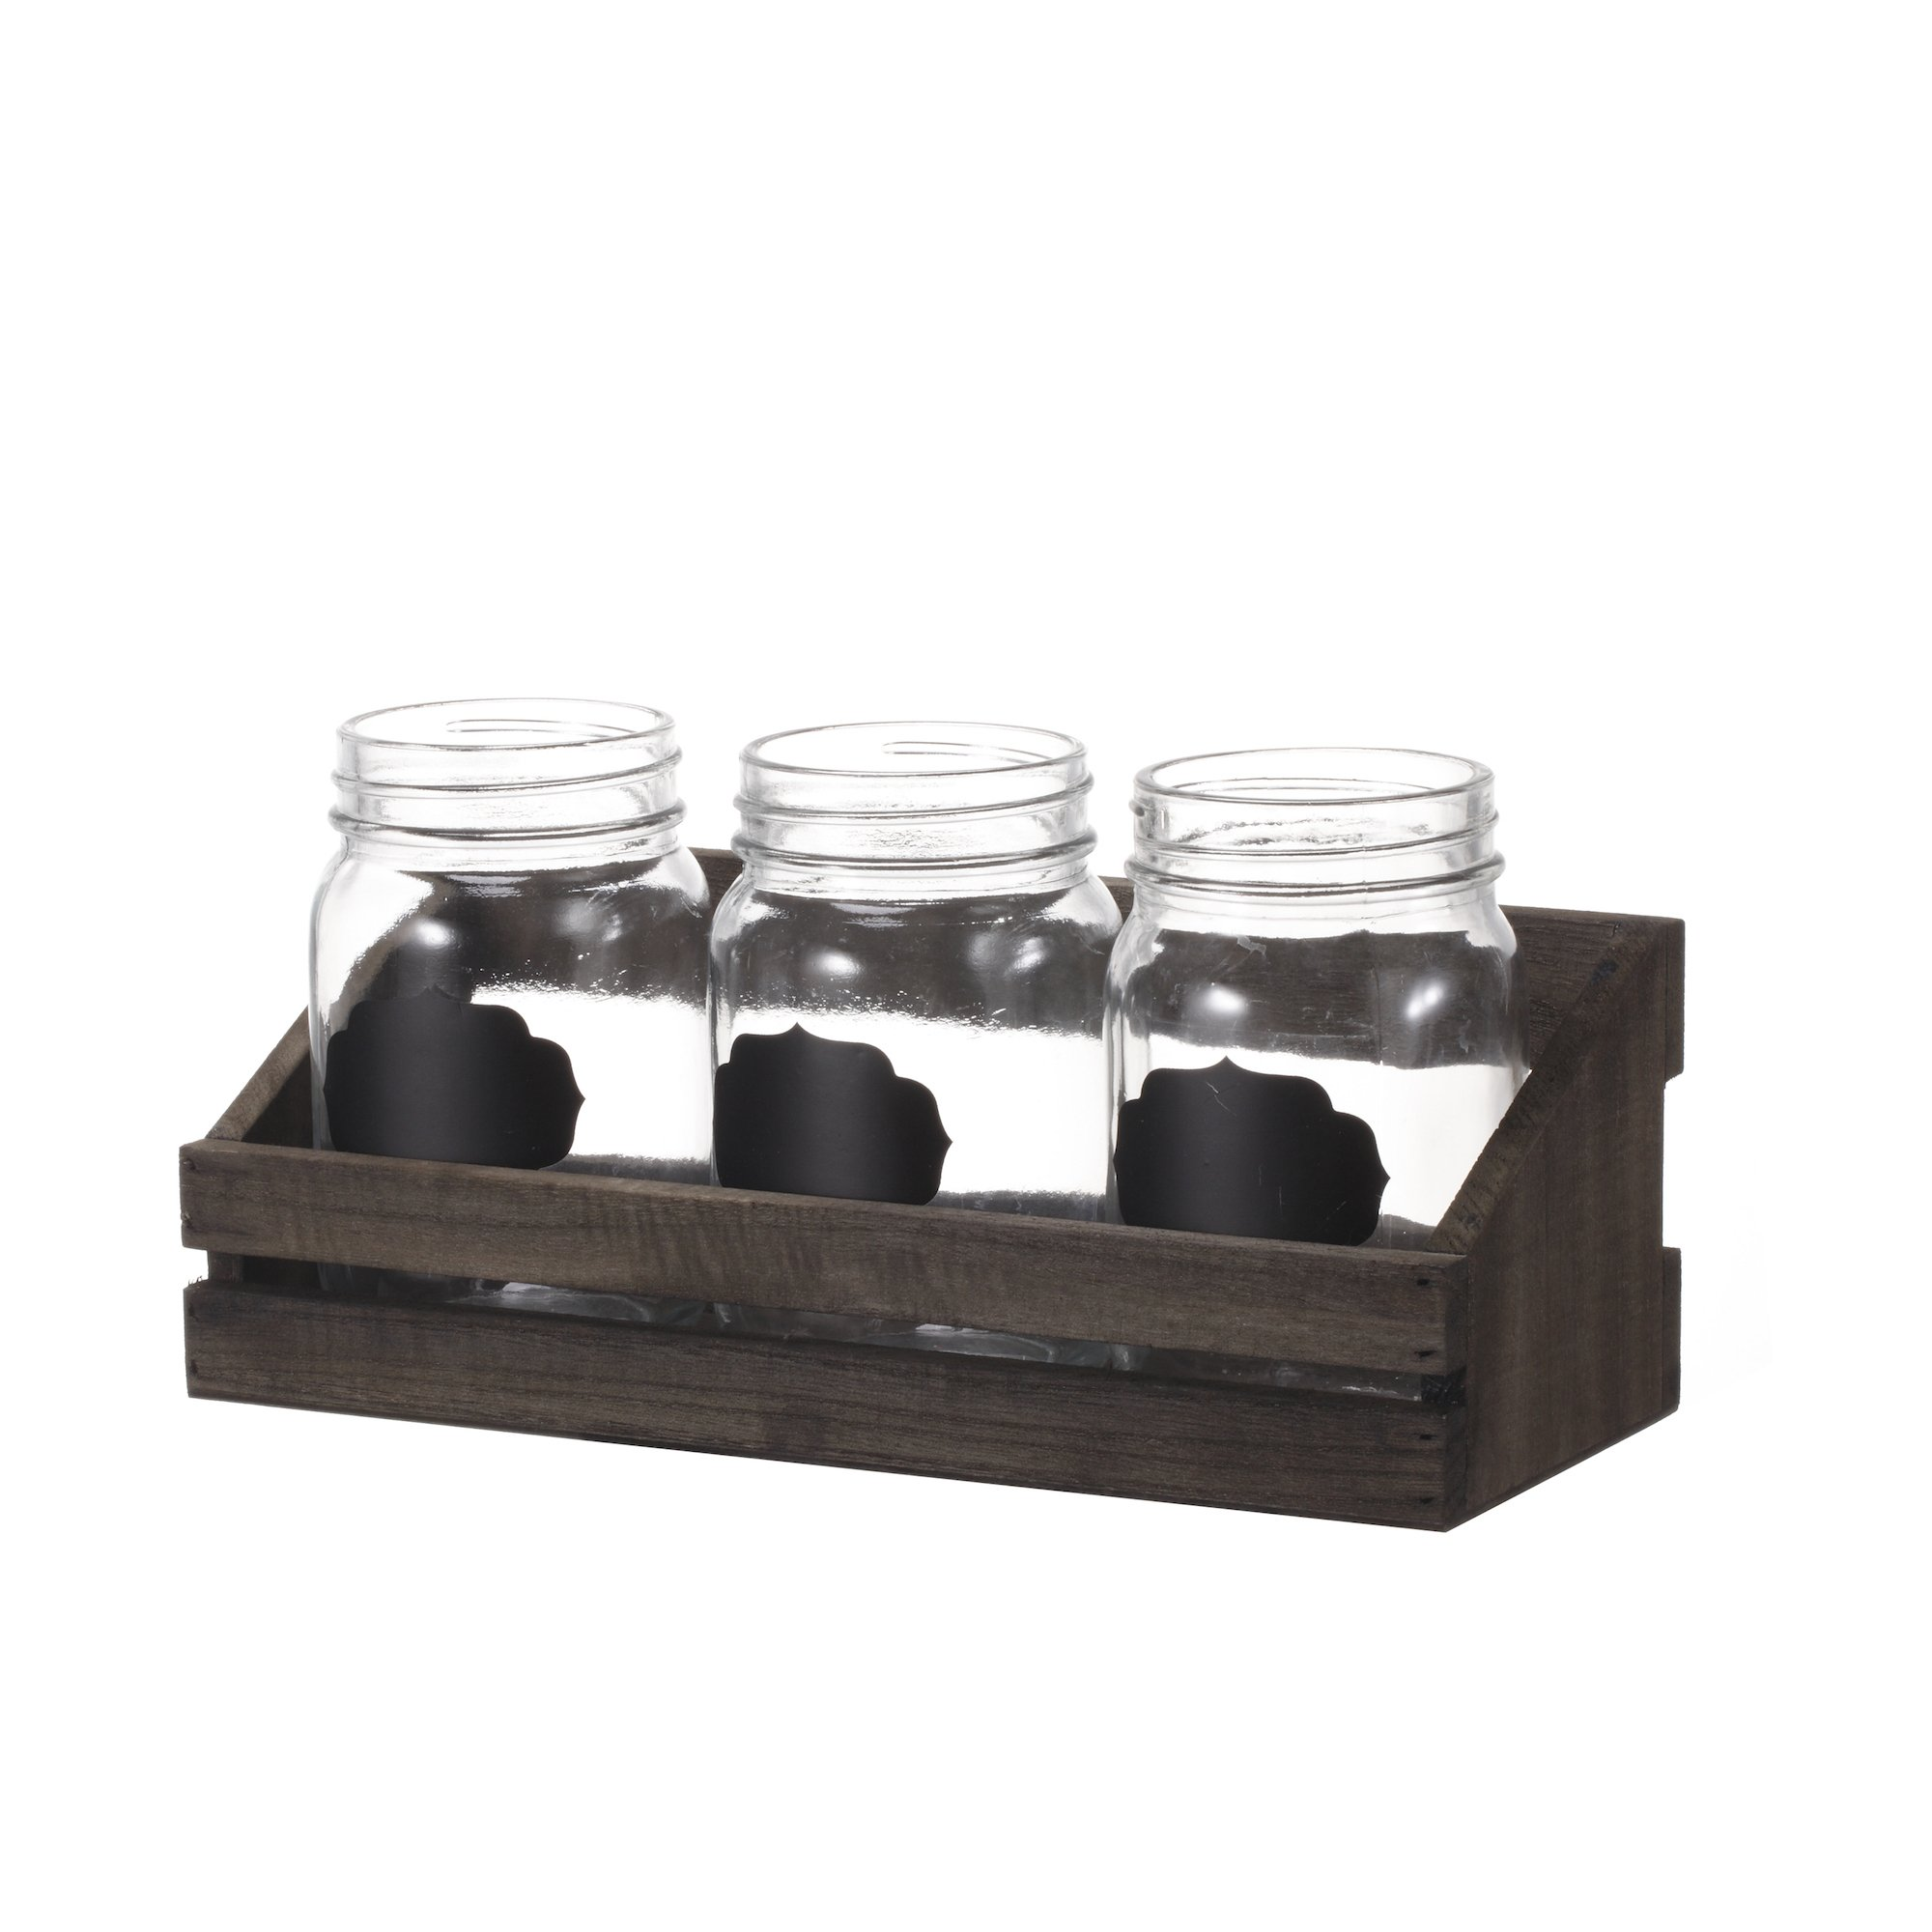 V-More Bud Vase with Chicken Wire Basket V-More Rustic Glass Mason Jar with Chalkboard Label and Wooden Tray 6.5-inch Tall For Home Decor Wedding Party Celebration by V-More Bud Vase with Chicken Wire Basket (Image #1)